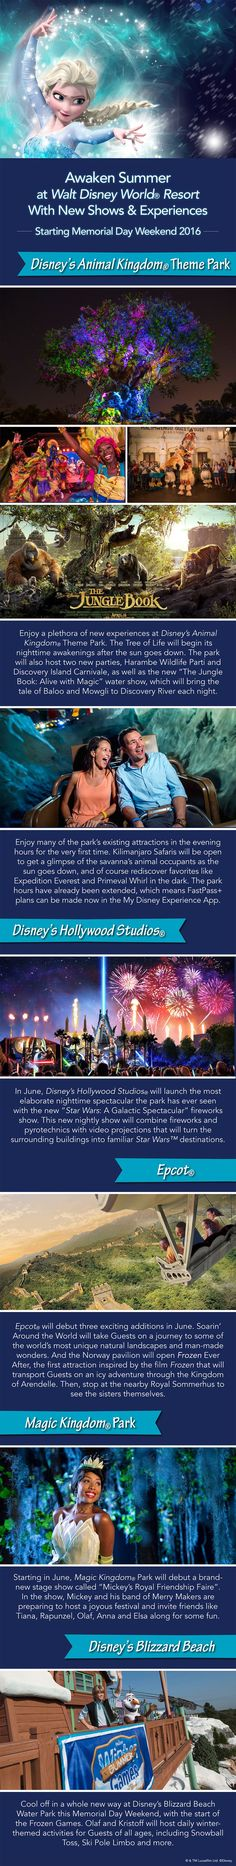 Are you ready for new Disney shows, fireworks and attractions? This summer will bring a whole lot more fun to all four parks at Walt Disney World Resort. A series of openings will being Memorial Day Weekend – and here's what's on tap for each location.